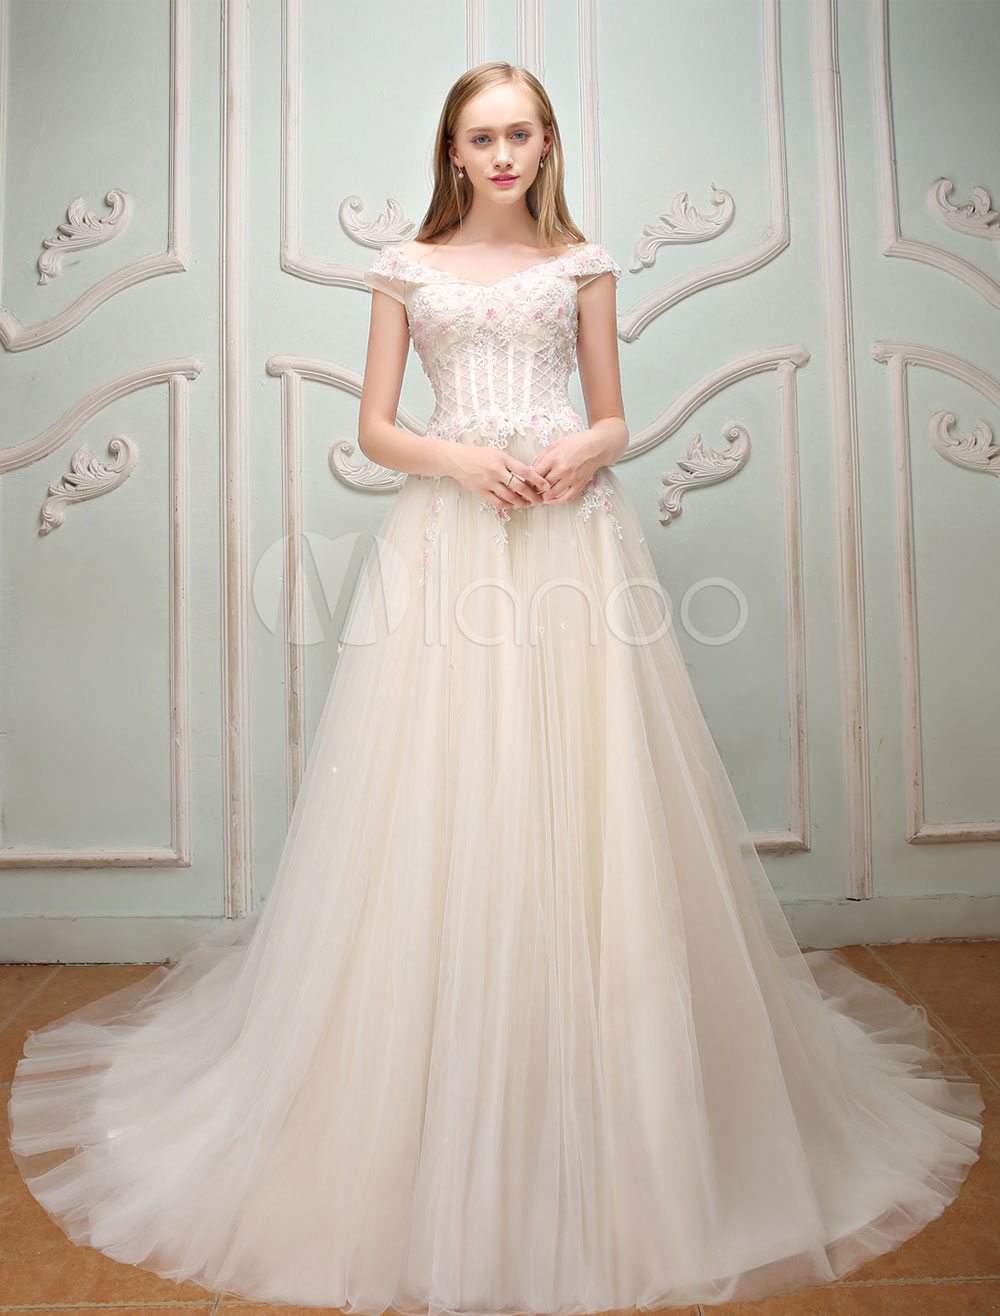 Luxury Prom Dresses Long Tulle Lace Flowers Beading Ivory Formal Party Dresses With Train